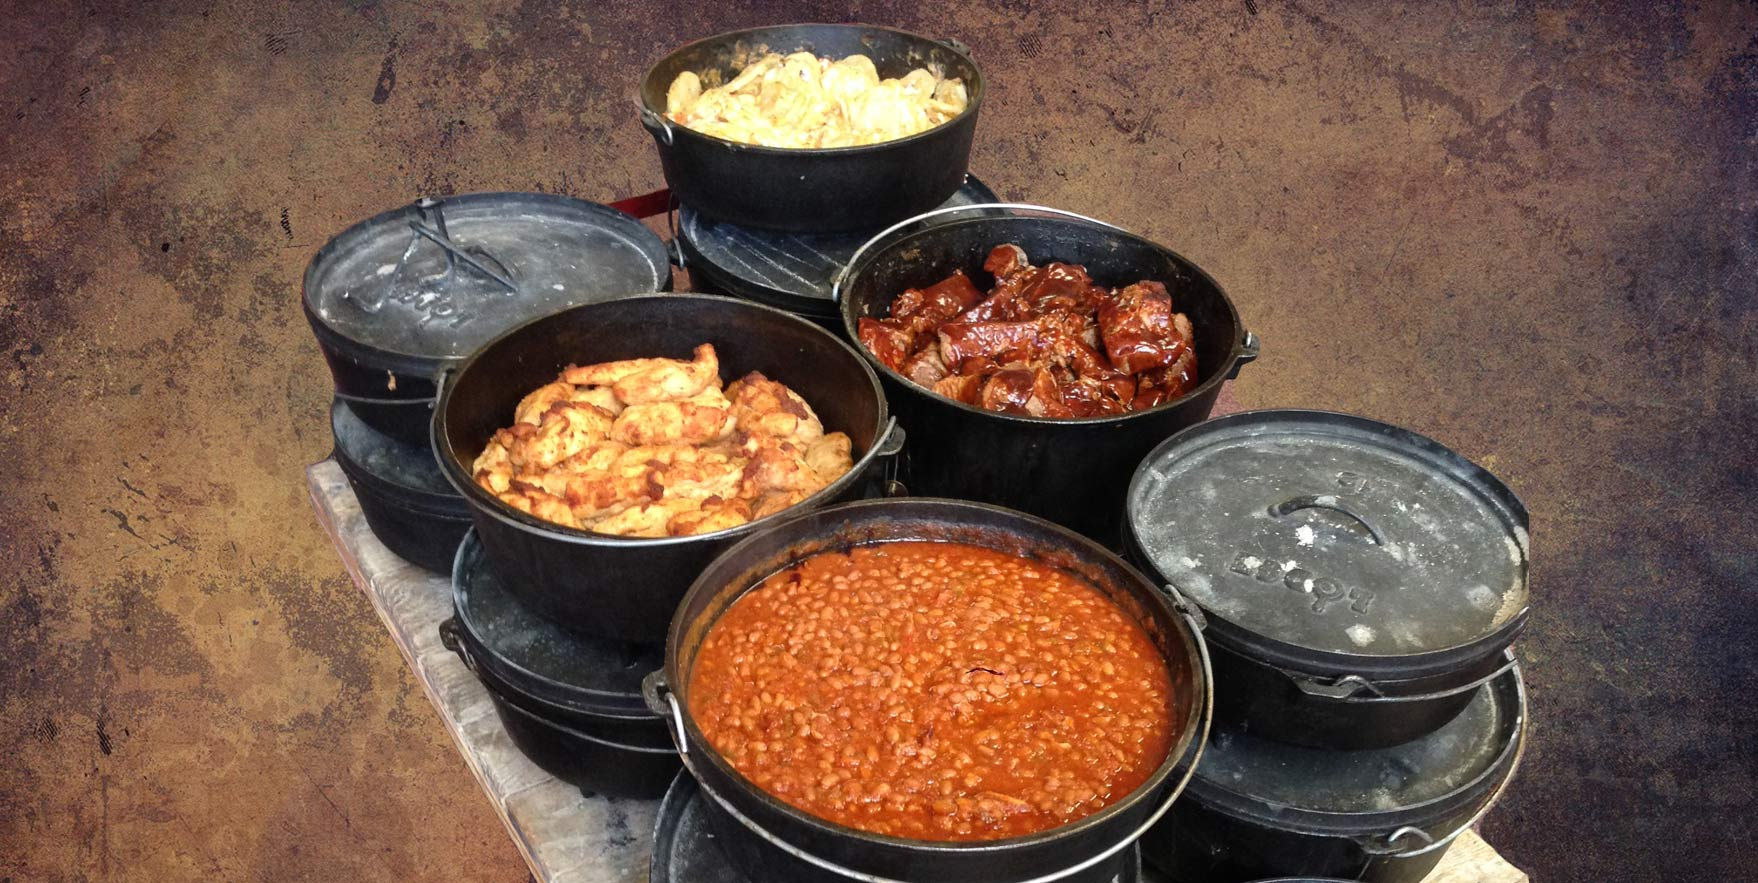 Dutch Oven Catering Utah Cast Iron Catering Company - Dutch Oven Catering for Utah ...